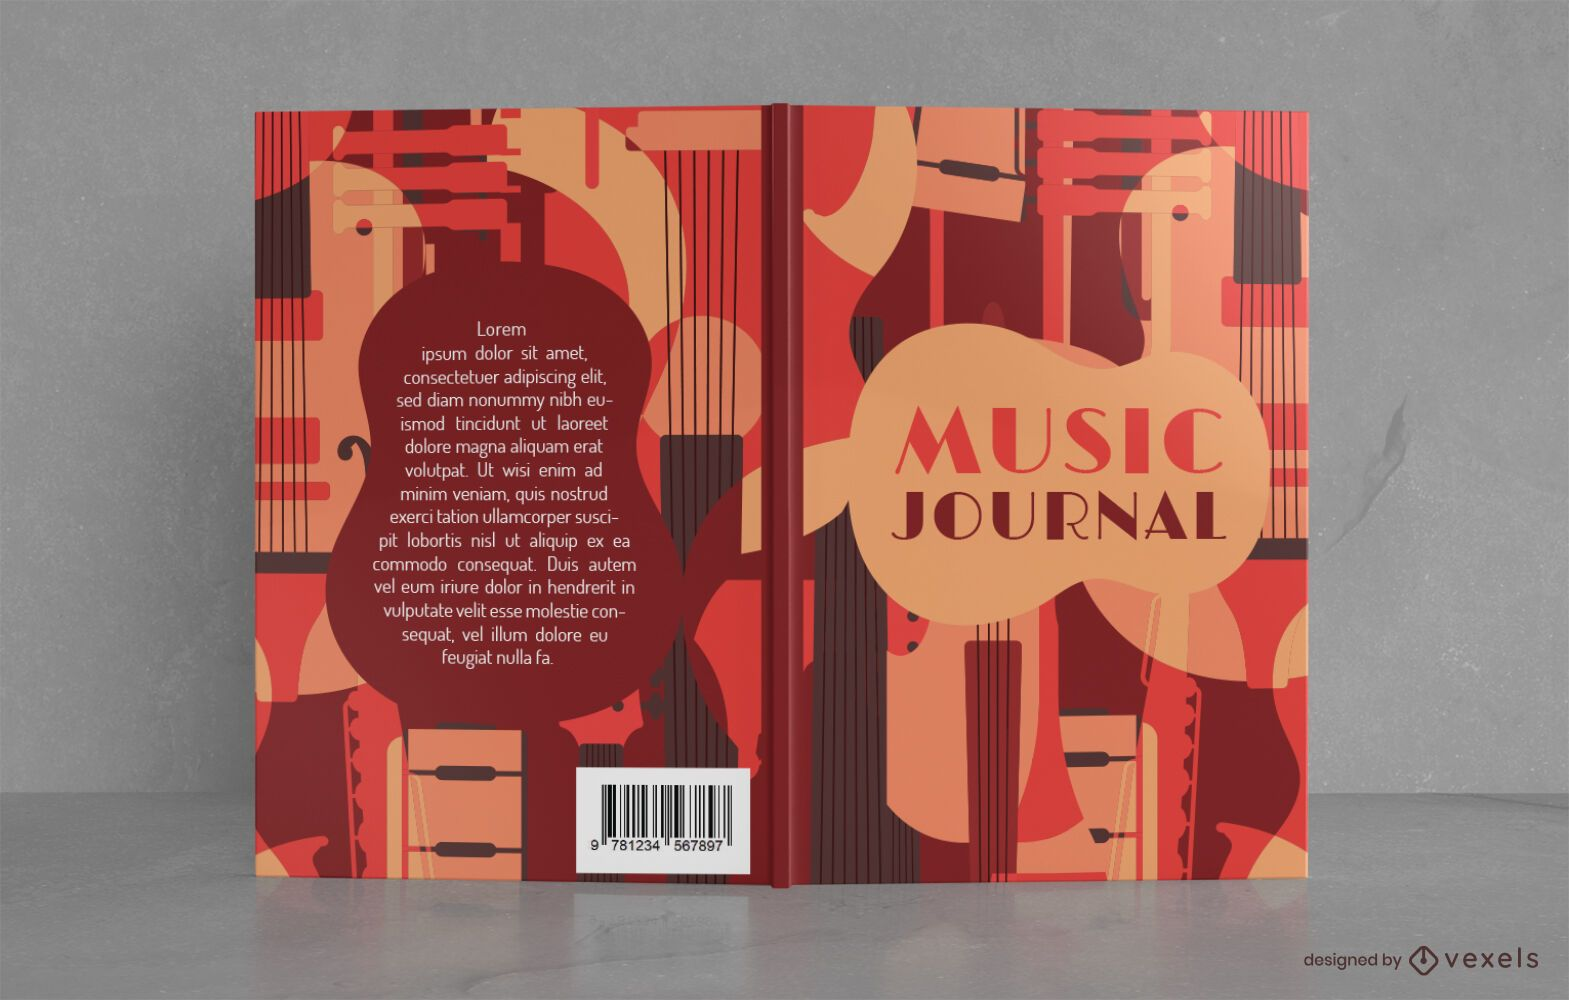 Vintage Style Music Journal Book Cover Design